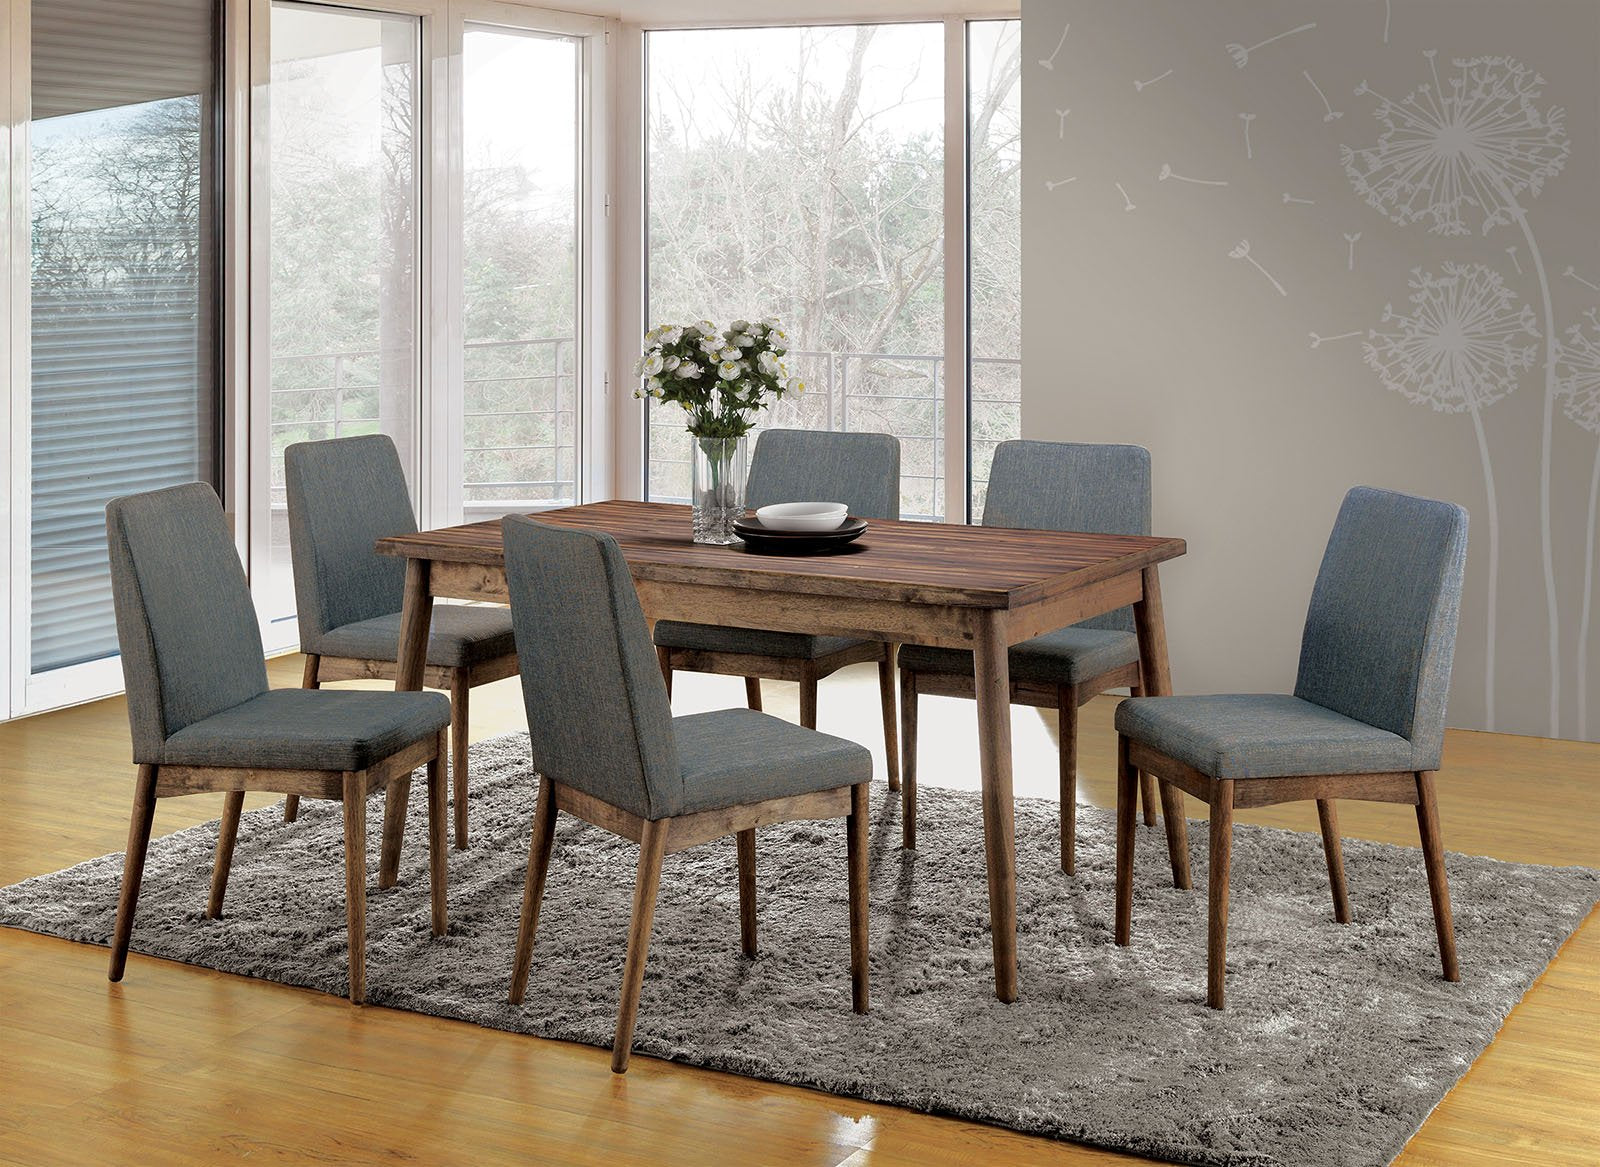 Eindride Natural Tone 7PC Dining Set - KTL Furniture